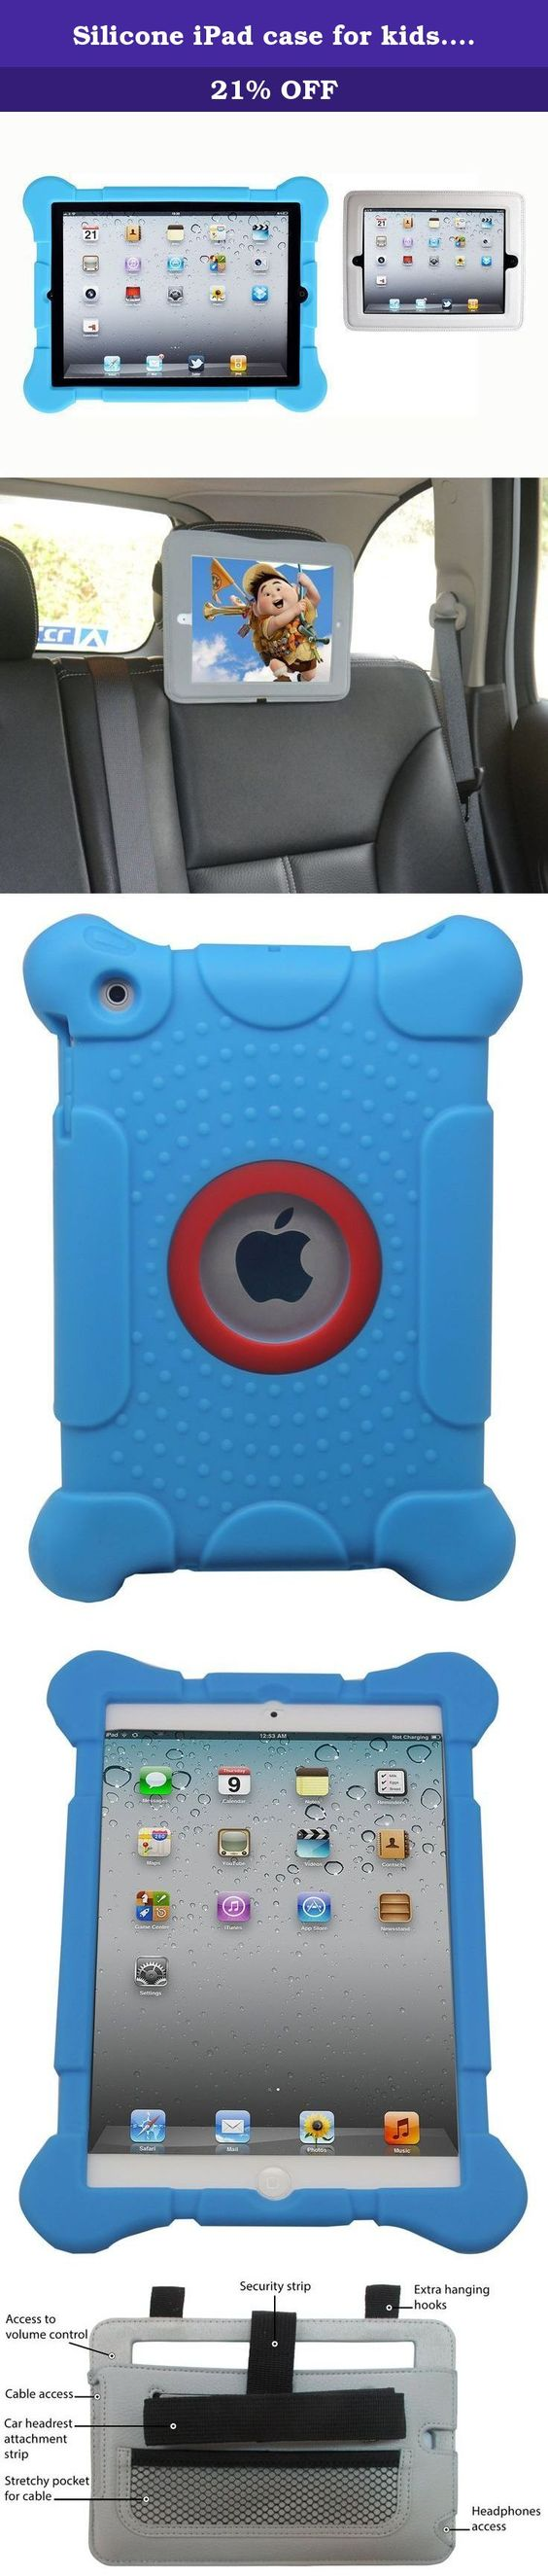 silicone ipad case for kids fits apple ipad 2 3 4 models